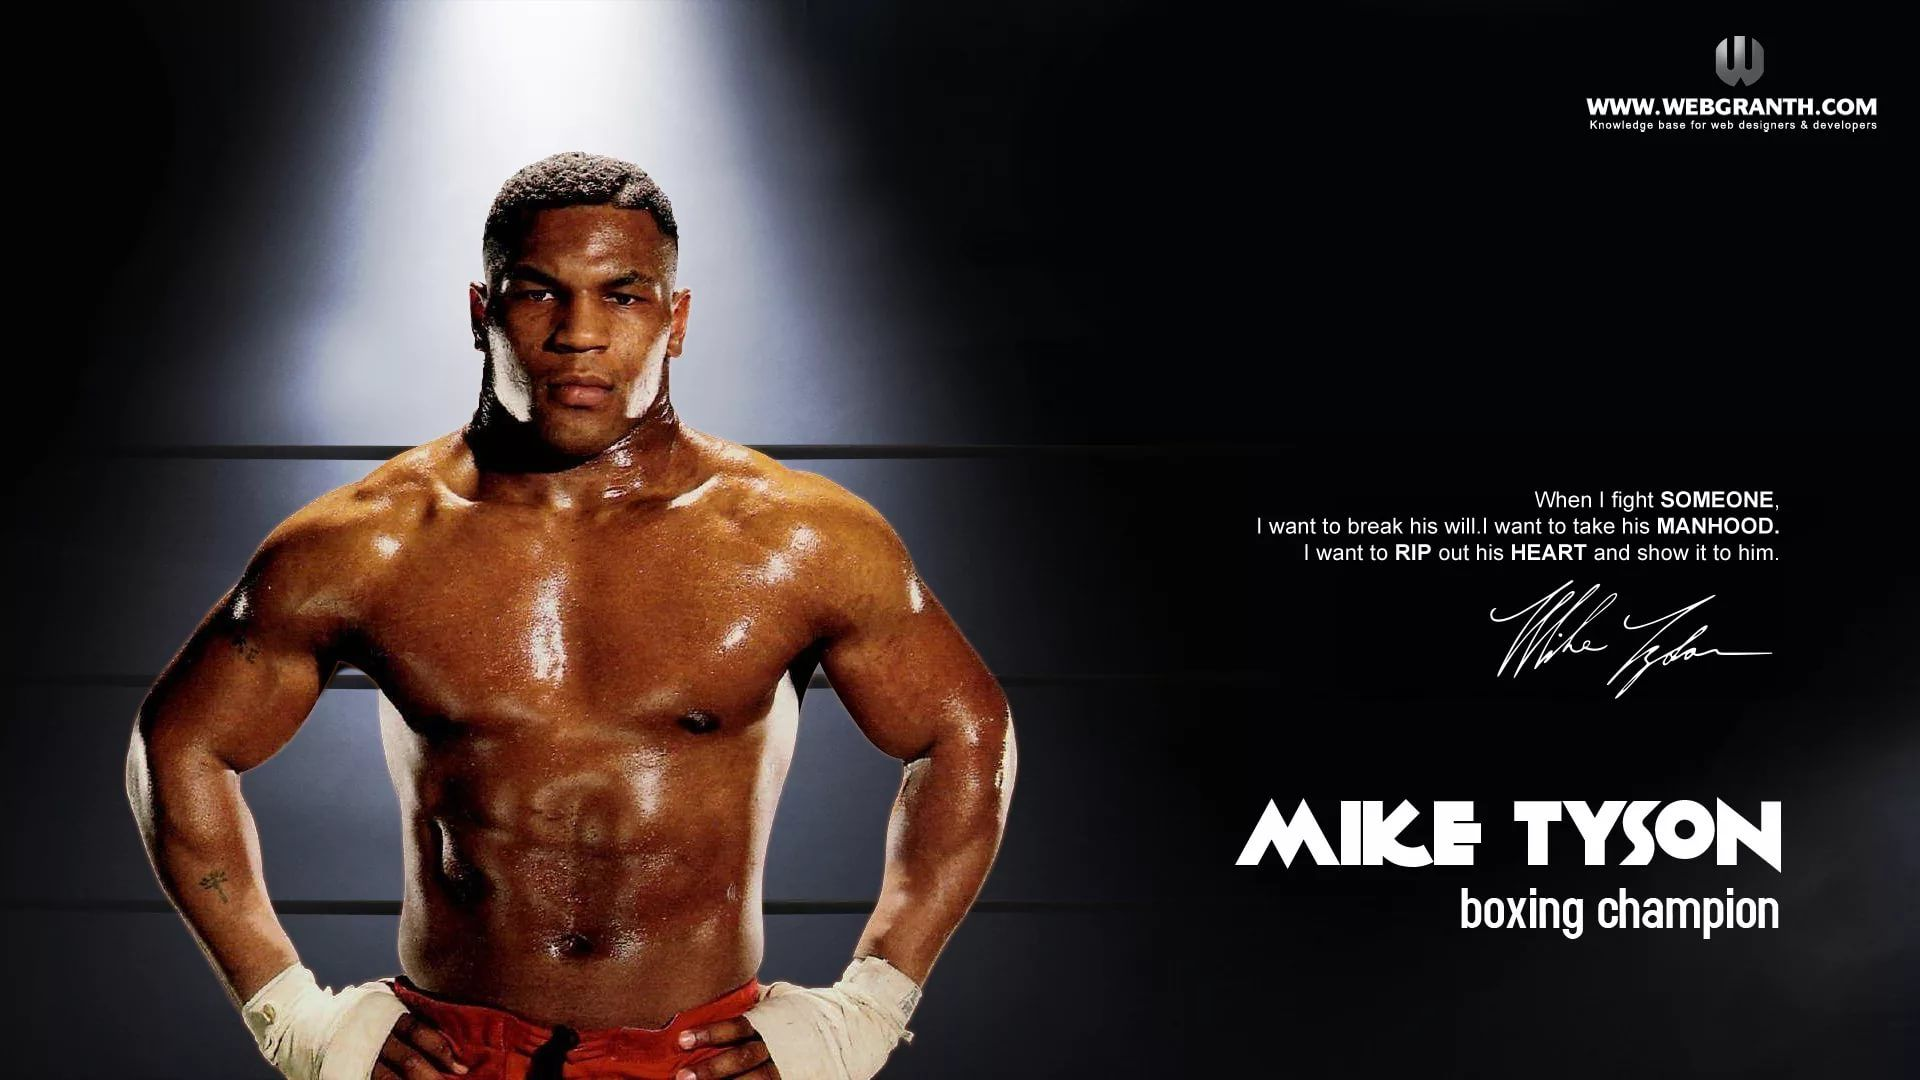 Mike Tyson Cool Wallpaper